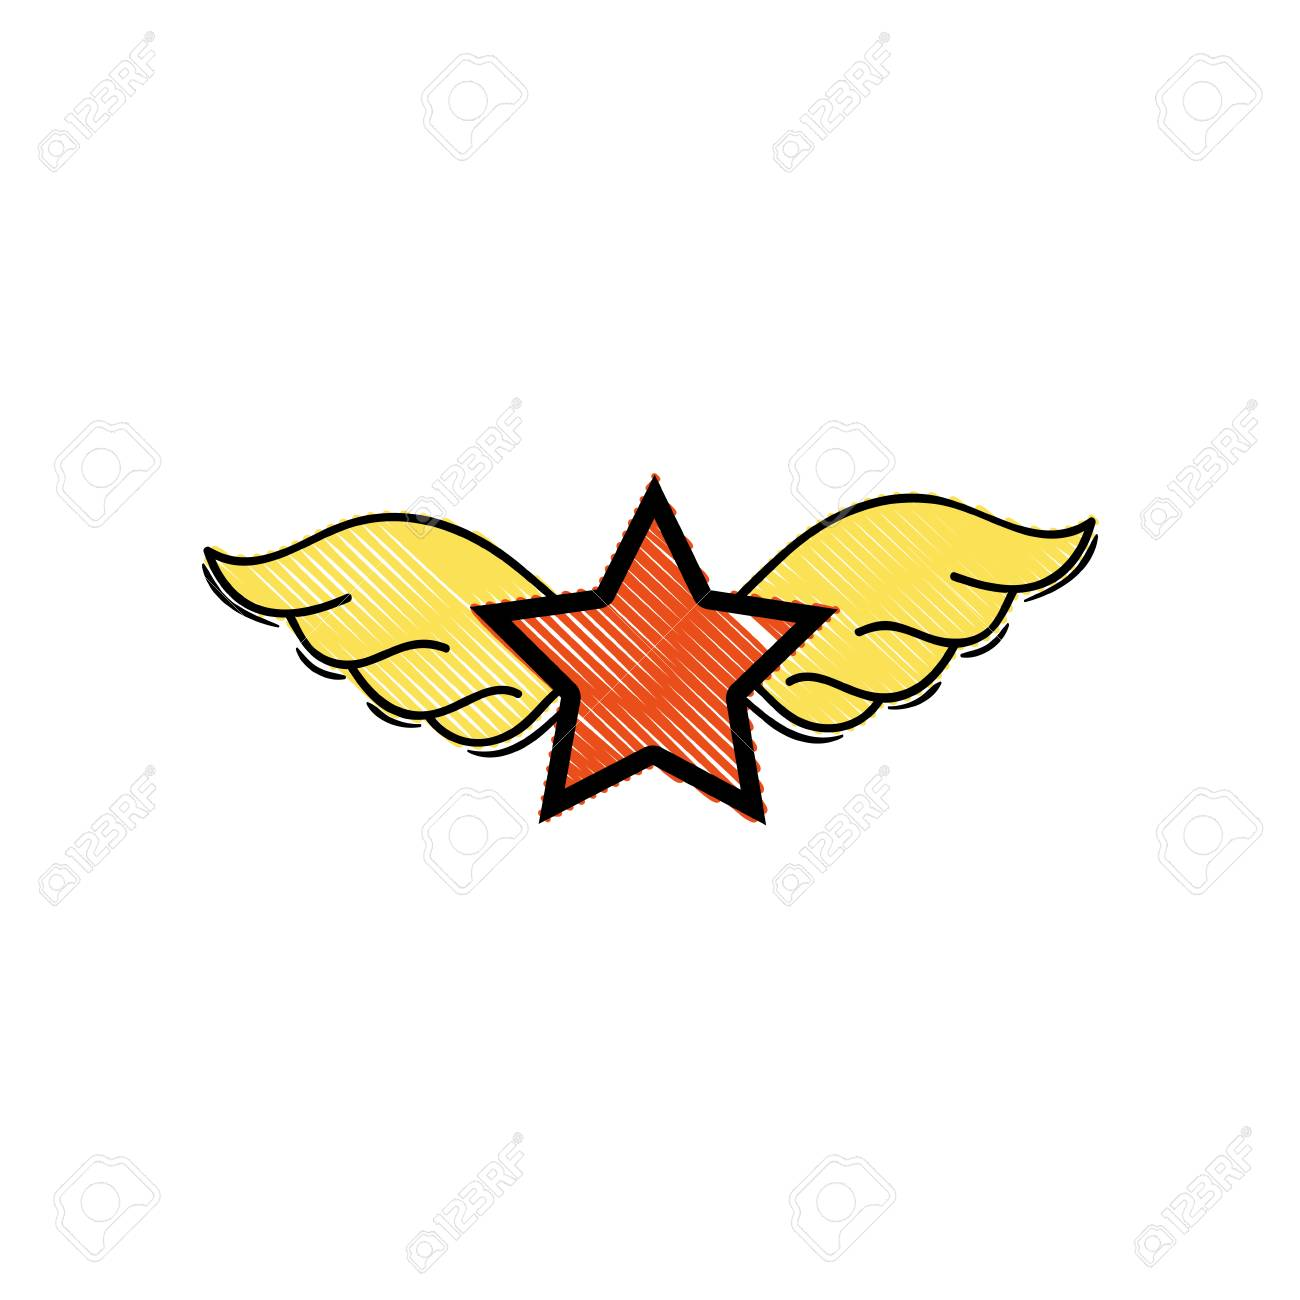 Grated Star With Wings Rock Symbol Royalty Free Cliparts Vectors